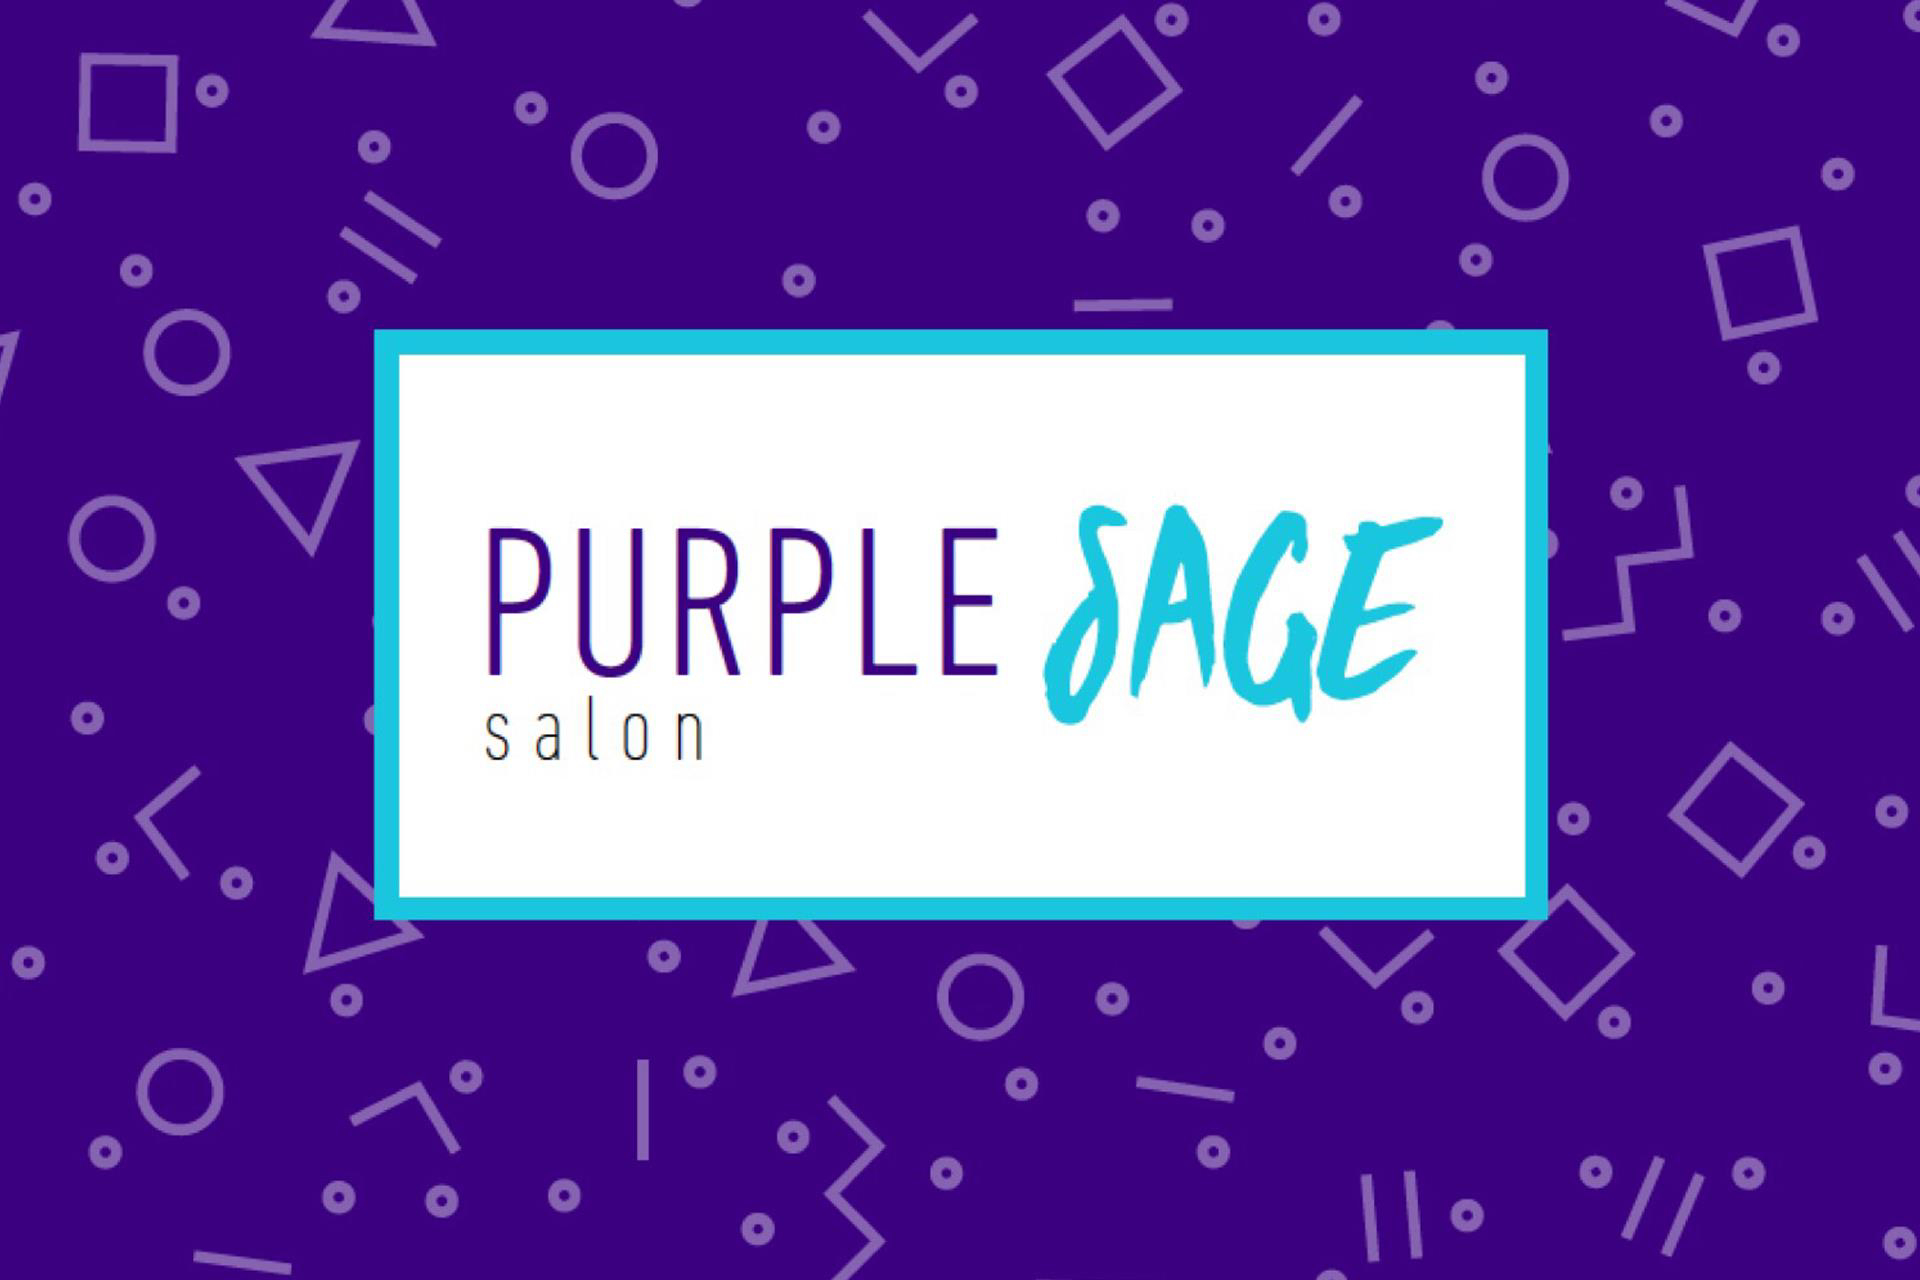 Purple sage salon in scottsdale az vagaro for Sage salon